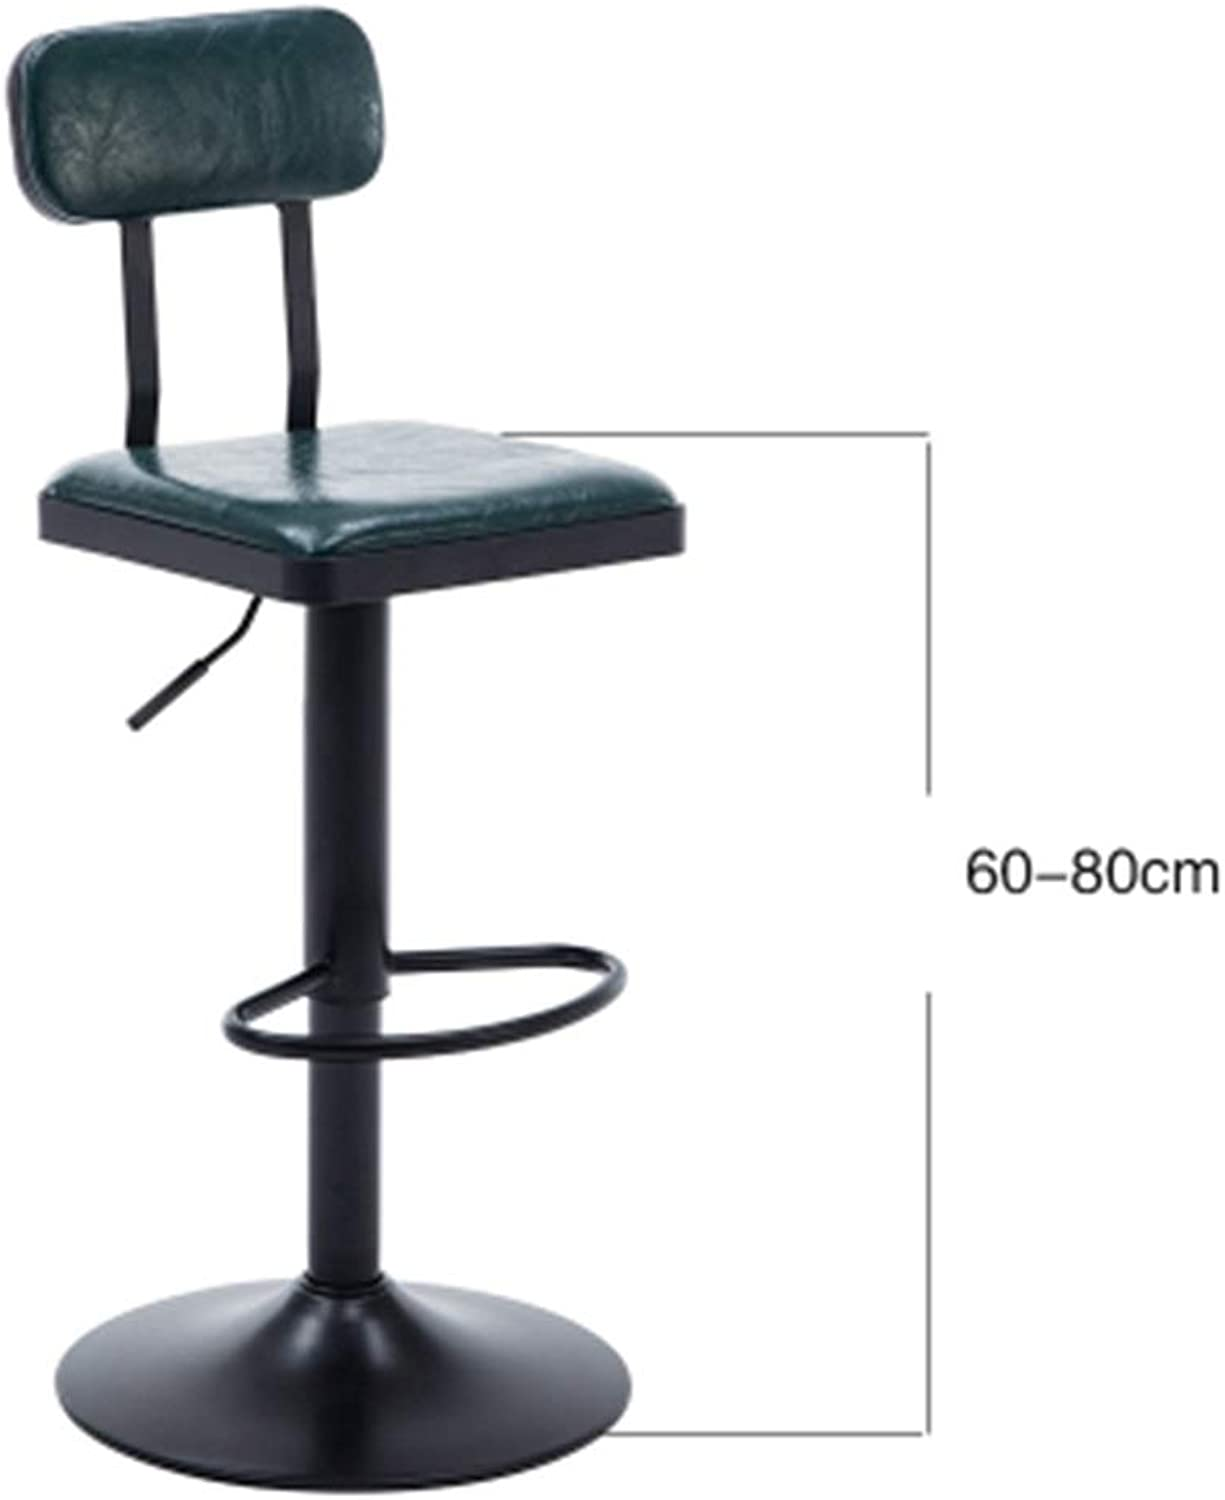 A-Fort Retro Bar Stool Kitchen Cafe Dining Chair Comfortable Leather Backrest High Stool Lift Swivel Chair (color   Dark Green)